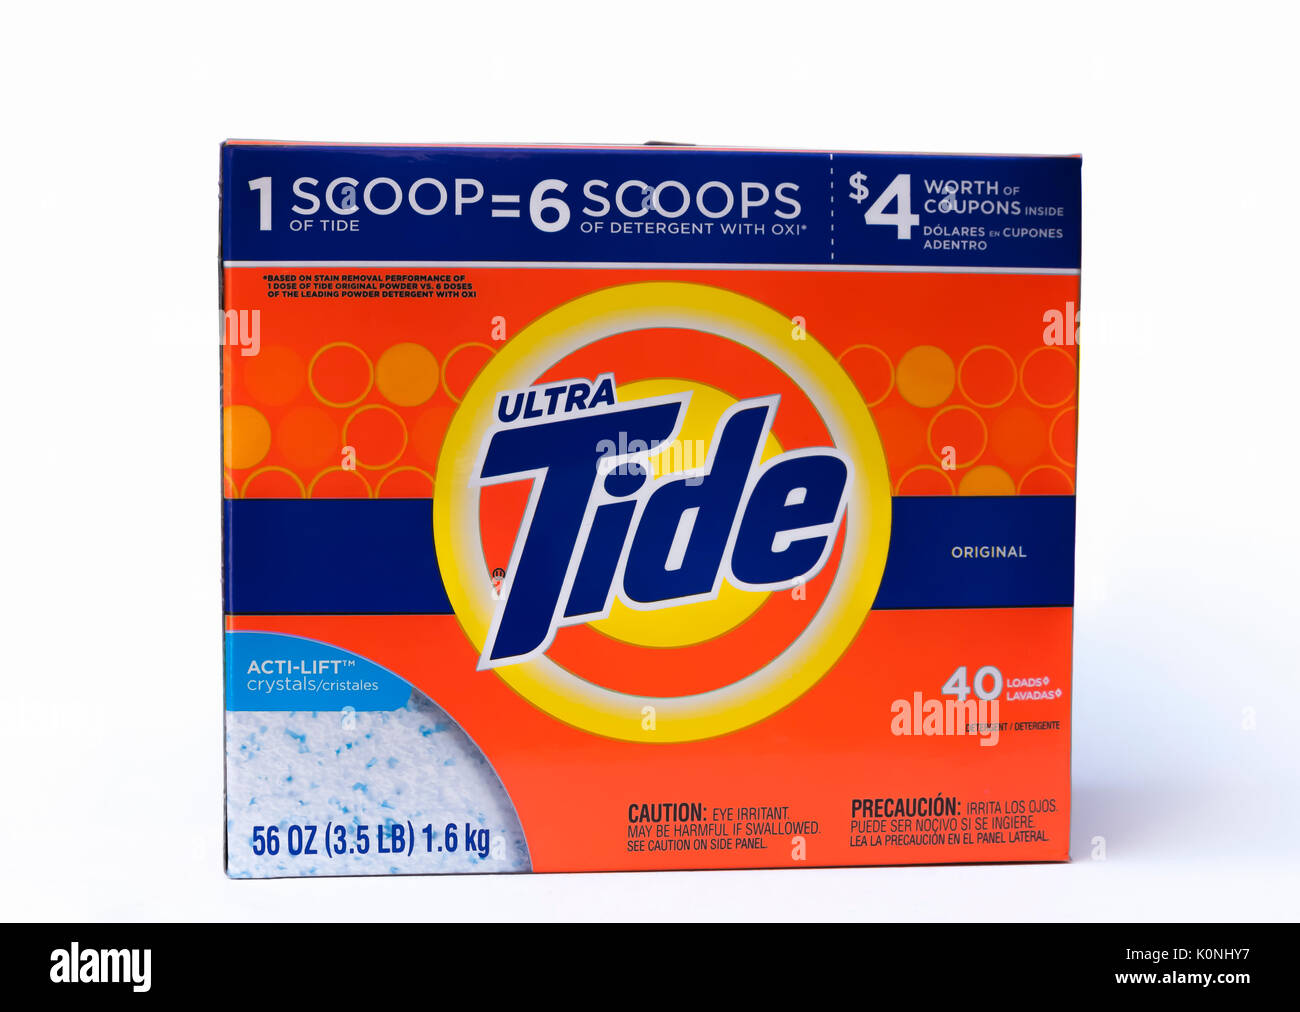 Box of Ultra Tide Laundry Detergent. - Stock Image